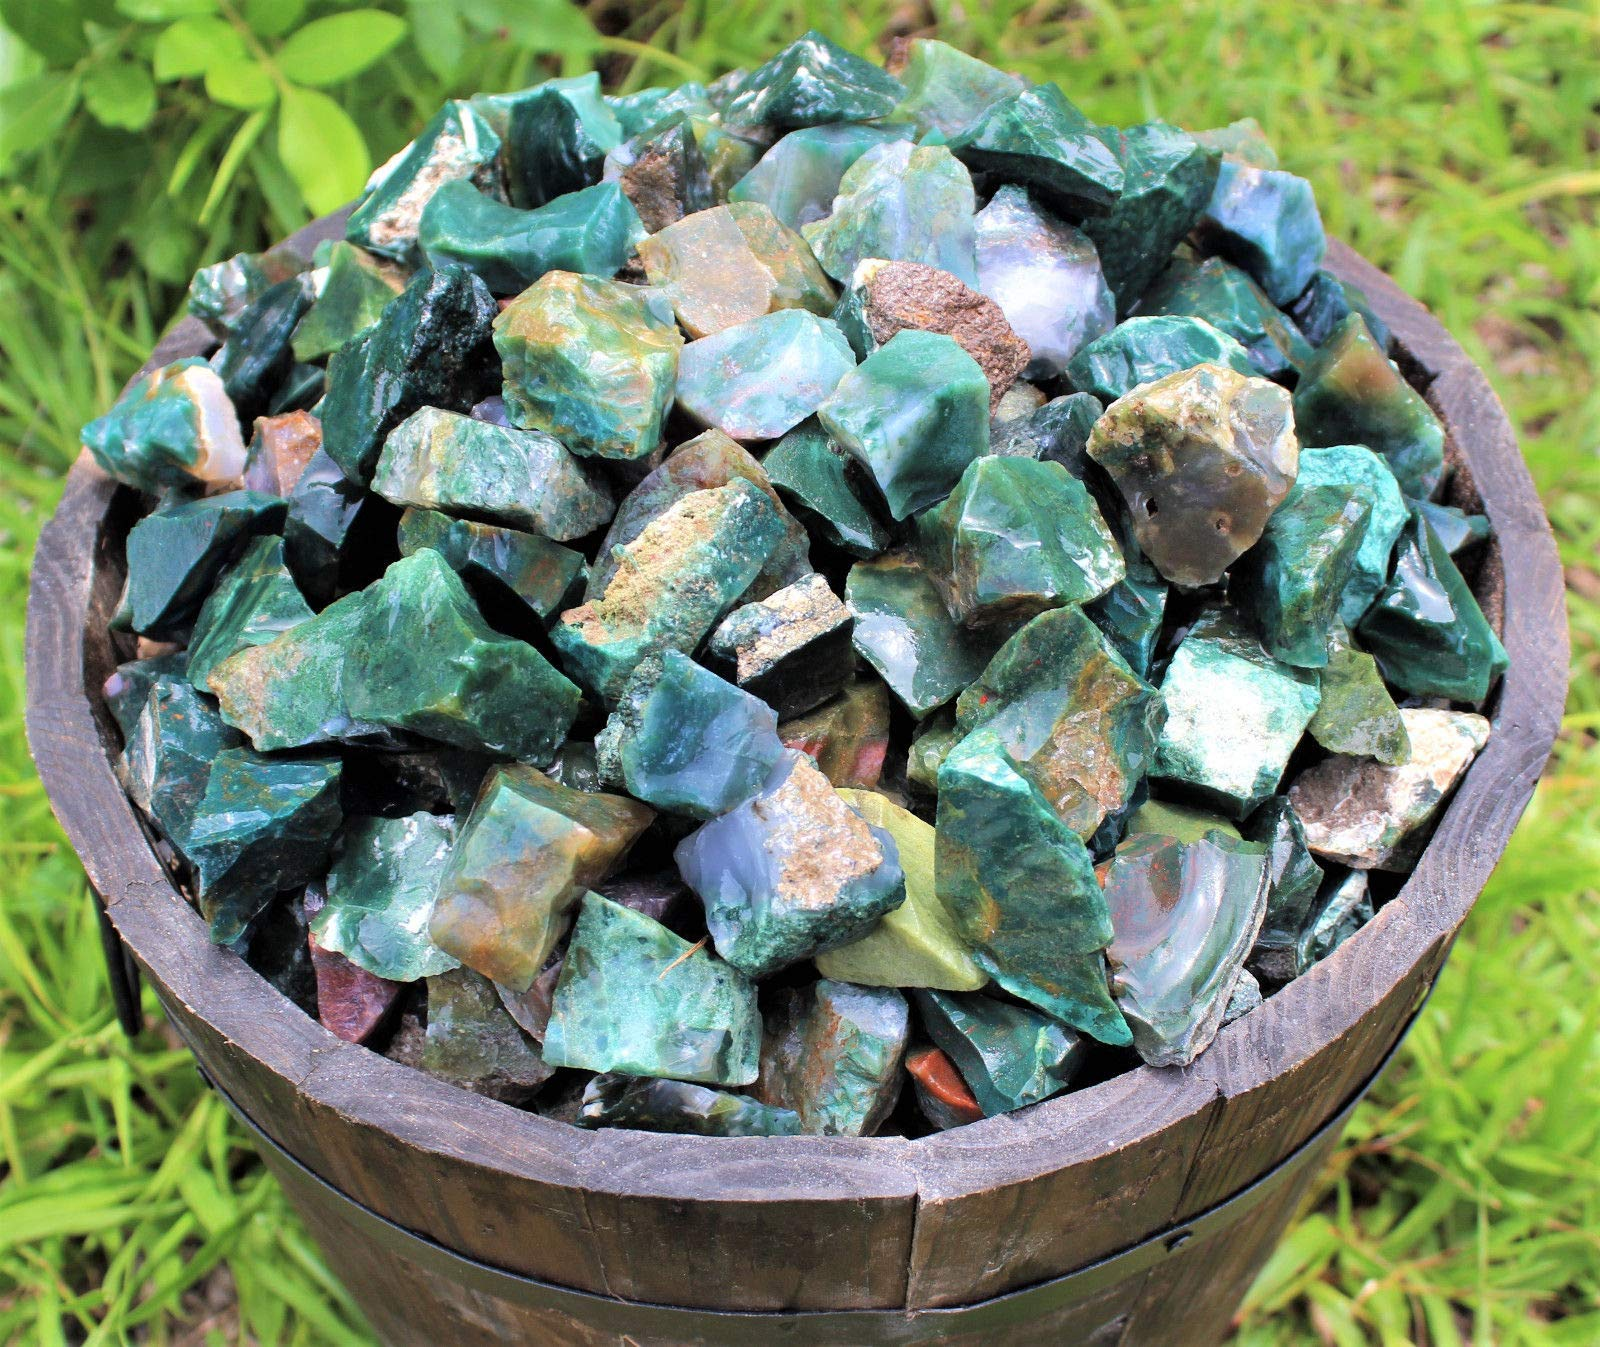 500 Carat Lot Bulk Natural Rough Bloodstone Raw Rock (Crystal Healing 100 Grams) by DD_INC